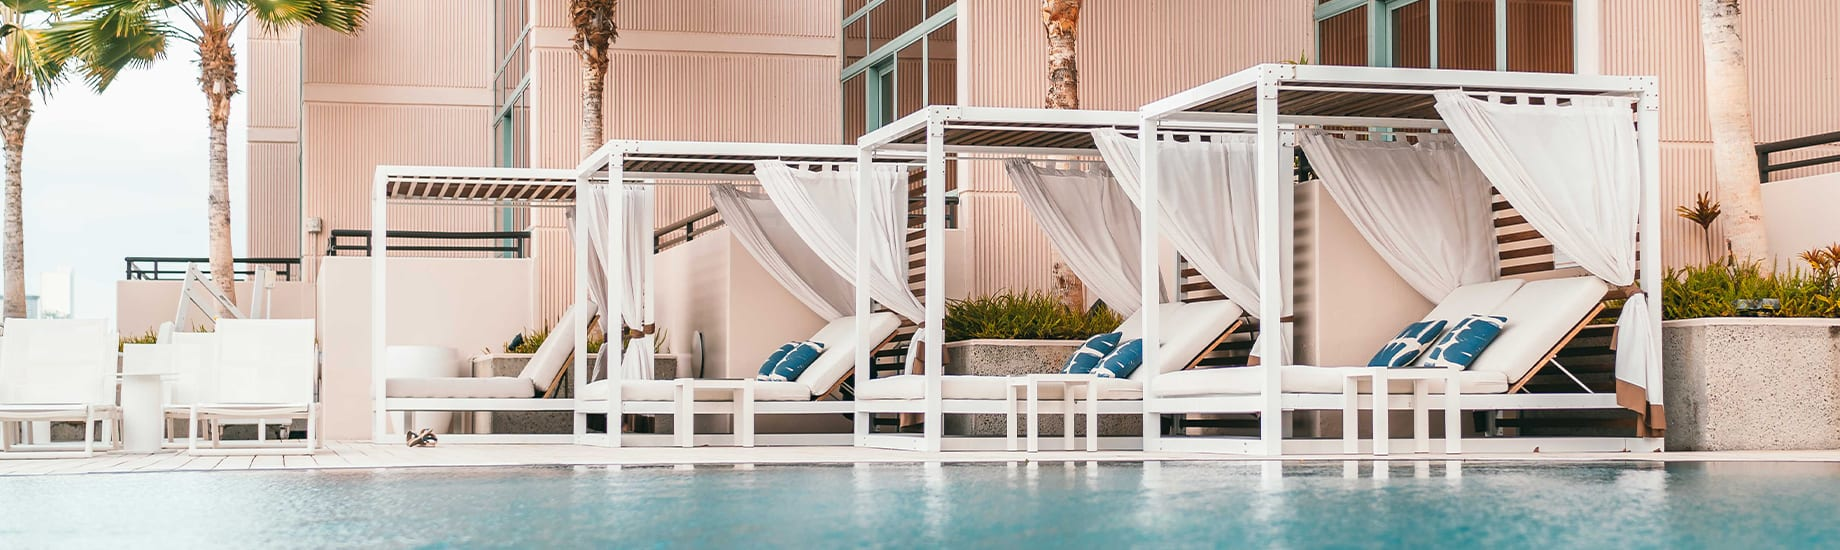 Hotel pool and ocean view cabanas.